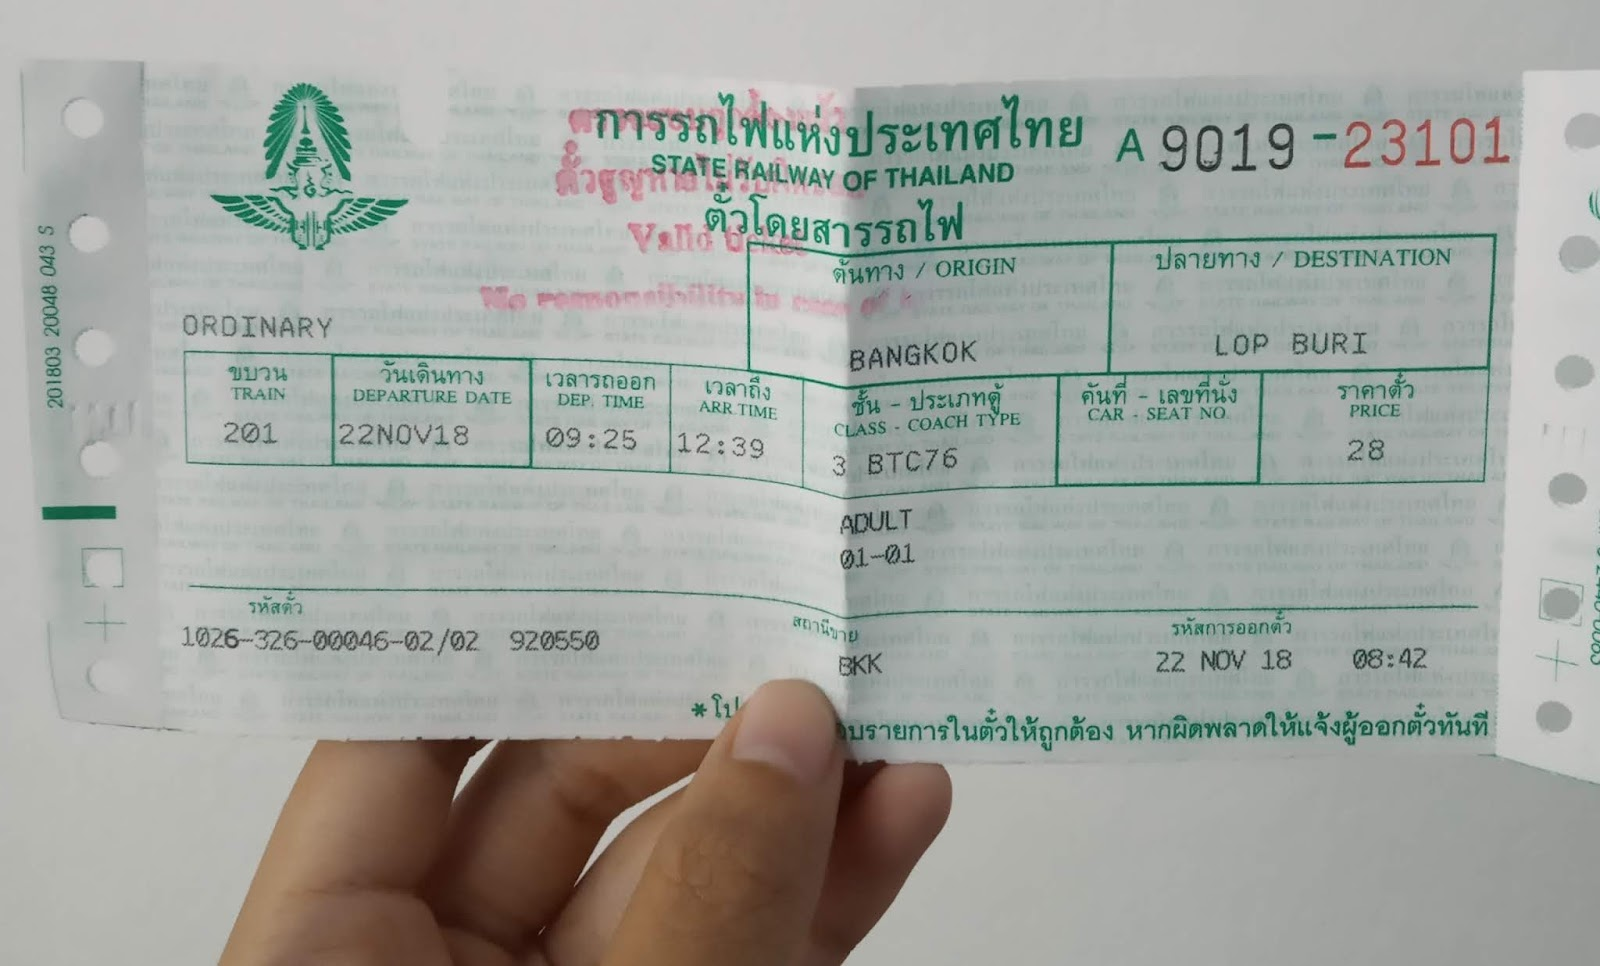 The train ticket to Lopburi